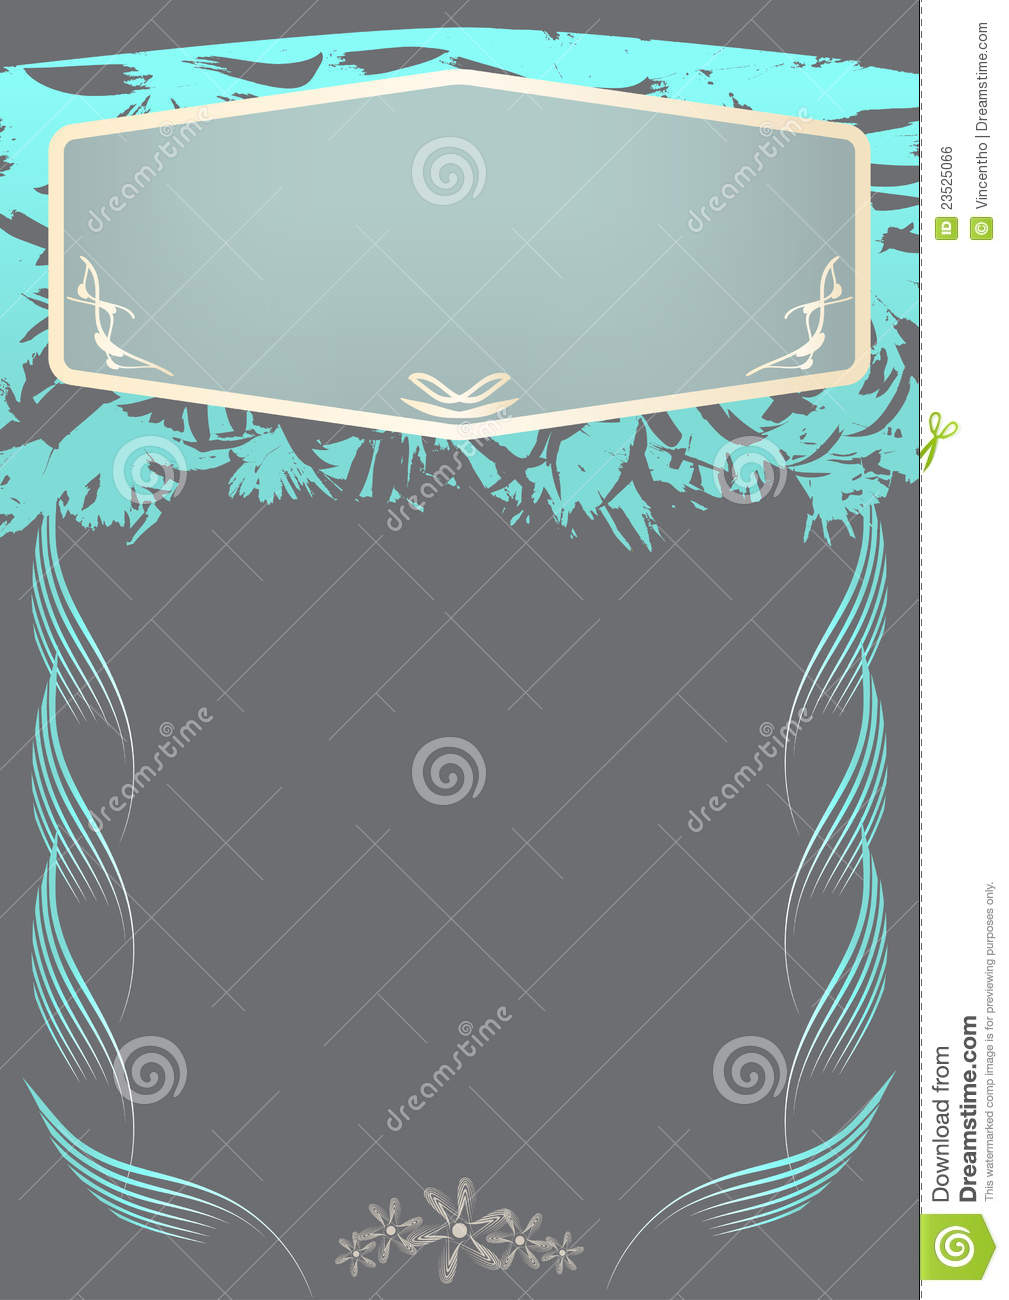 Special Invitation Card Design Royalty Free Stock Image Image 23525066